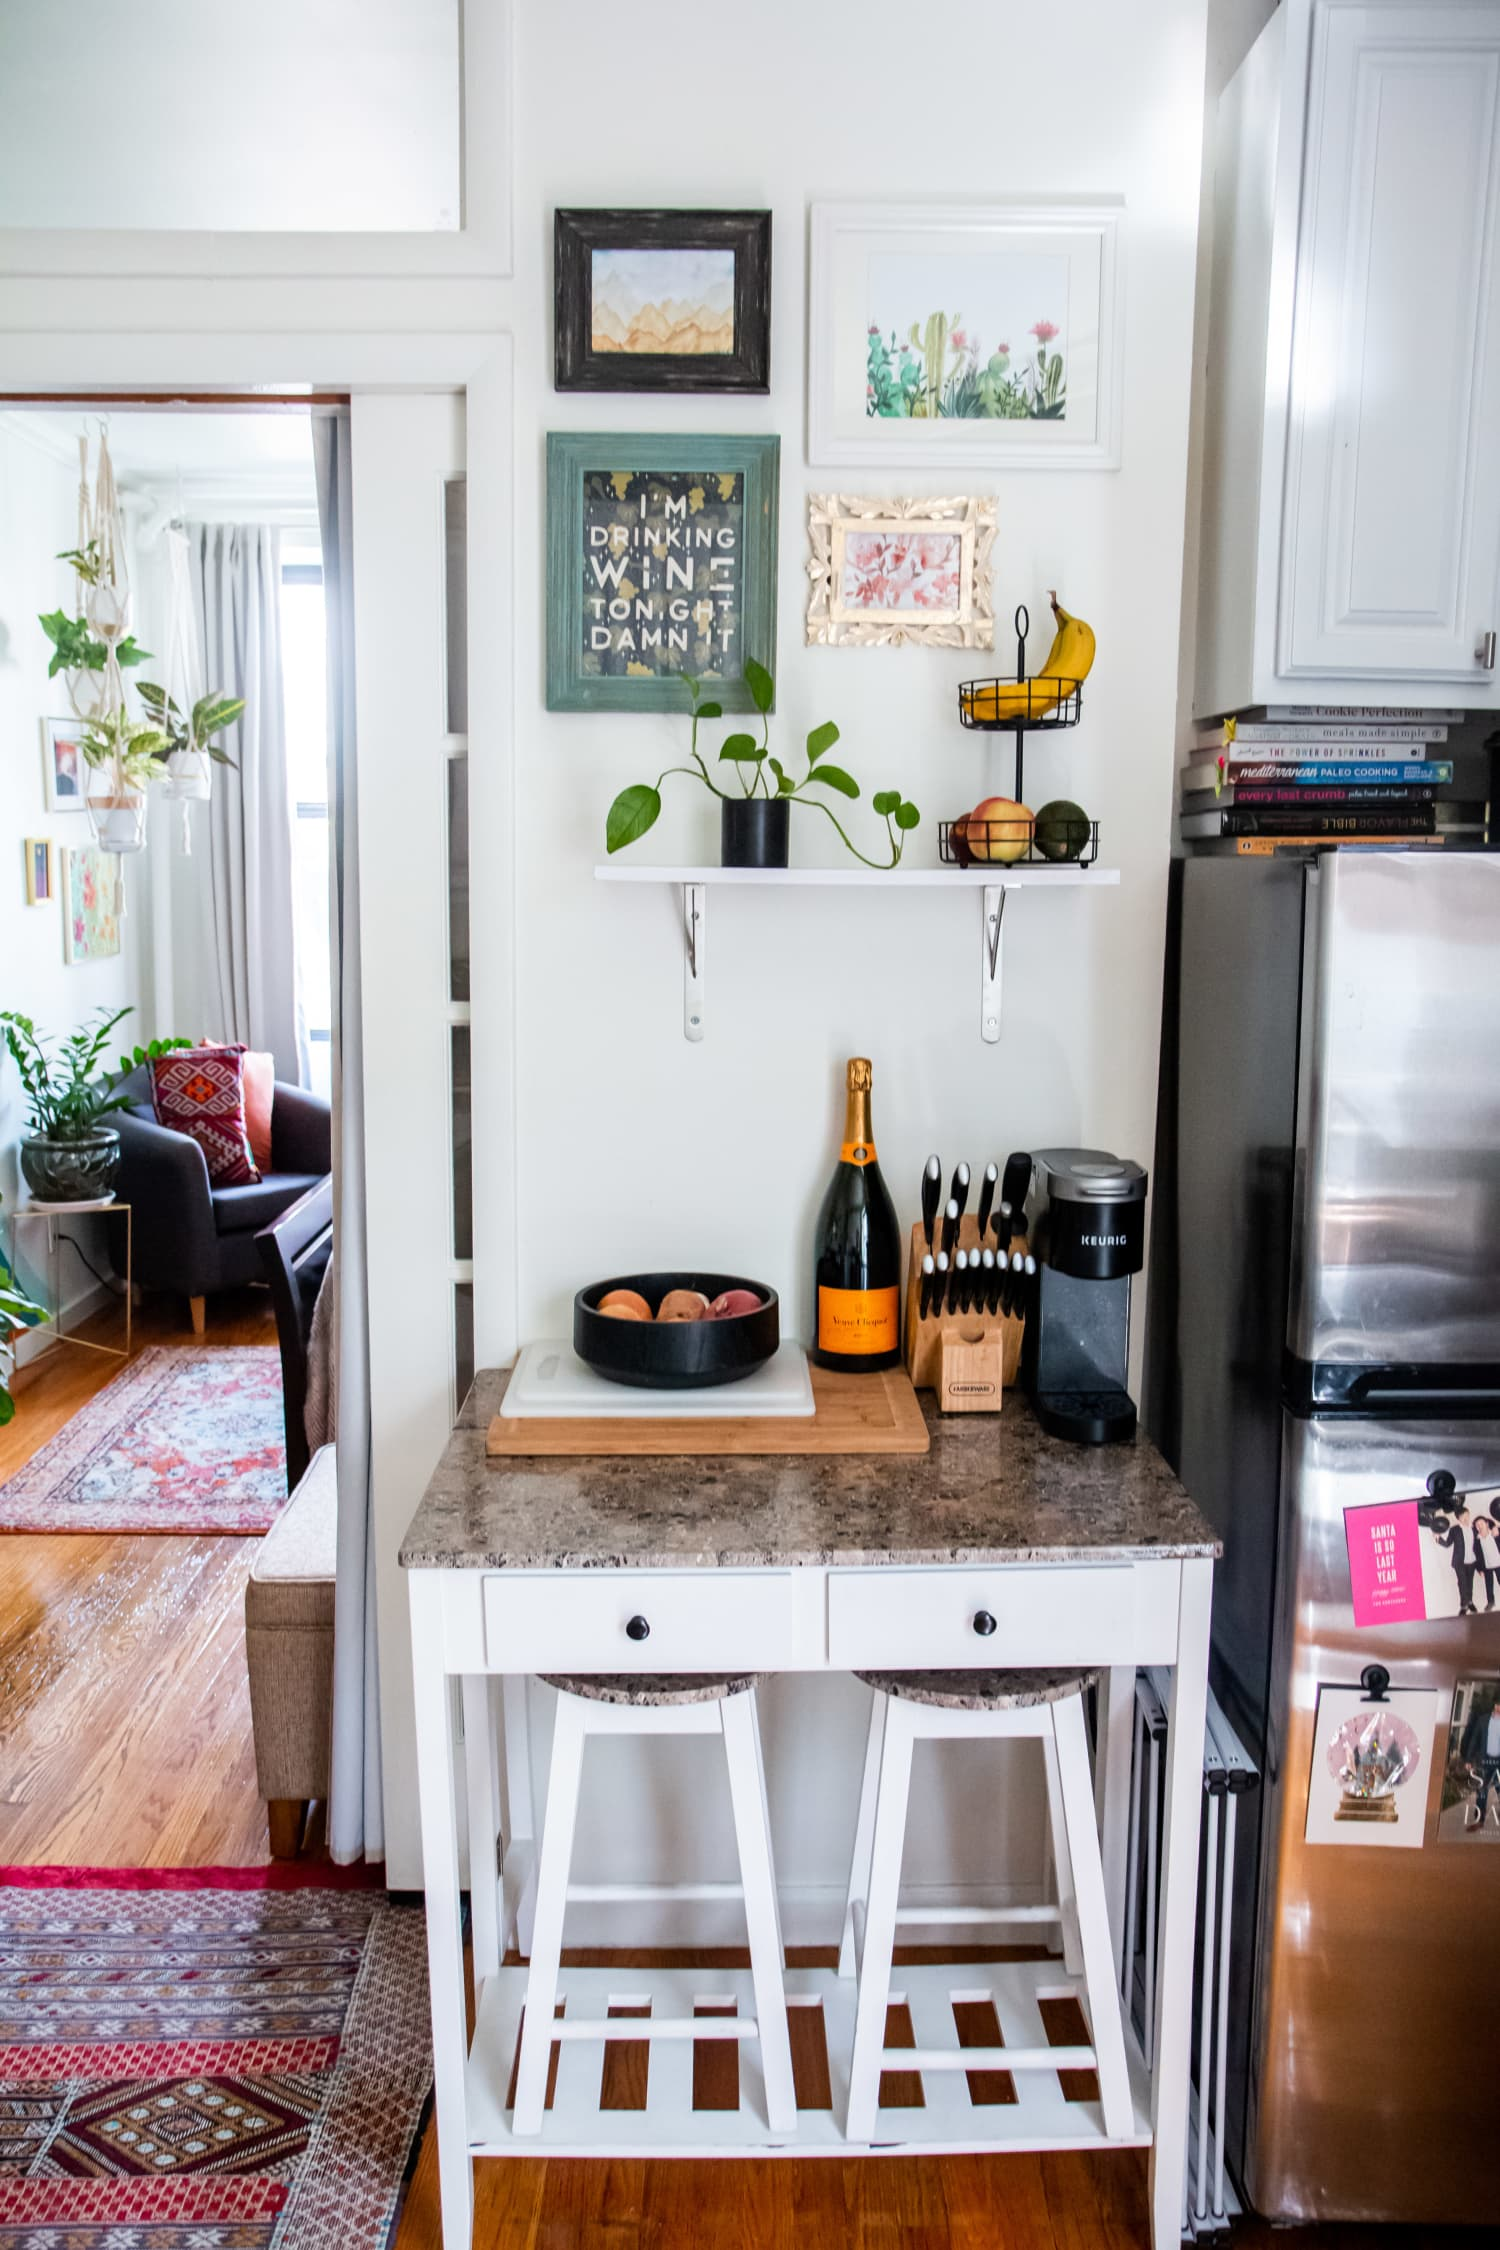 5 Smart Storage Tips You Should Steal from This Tiny New York City Apartment Kitchen